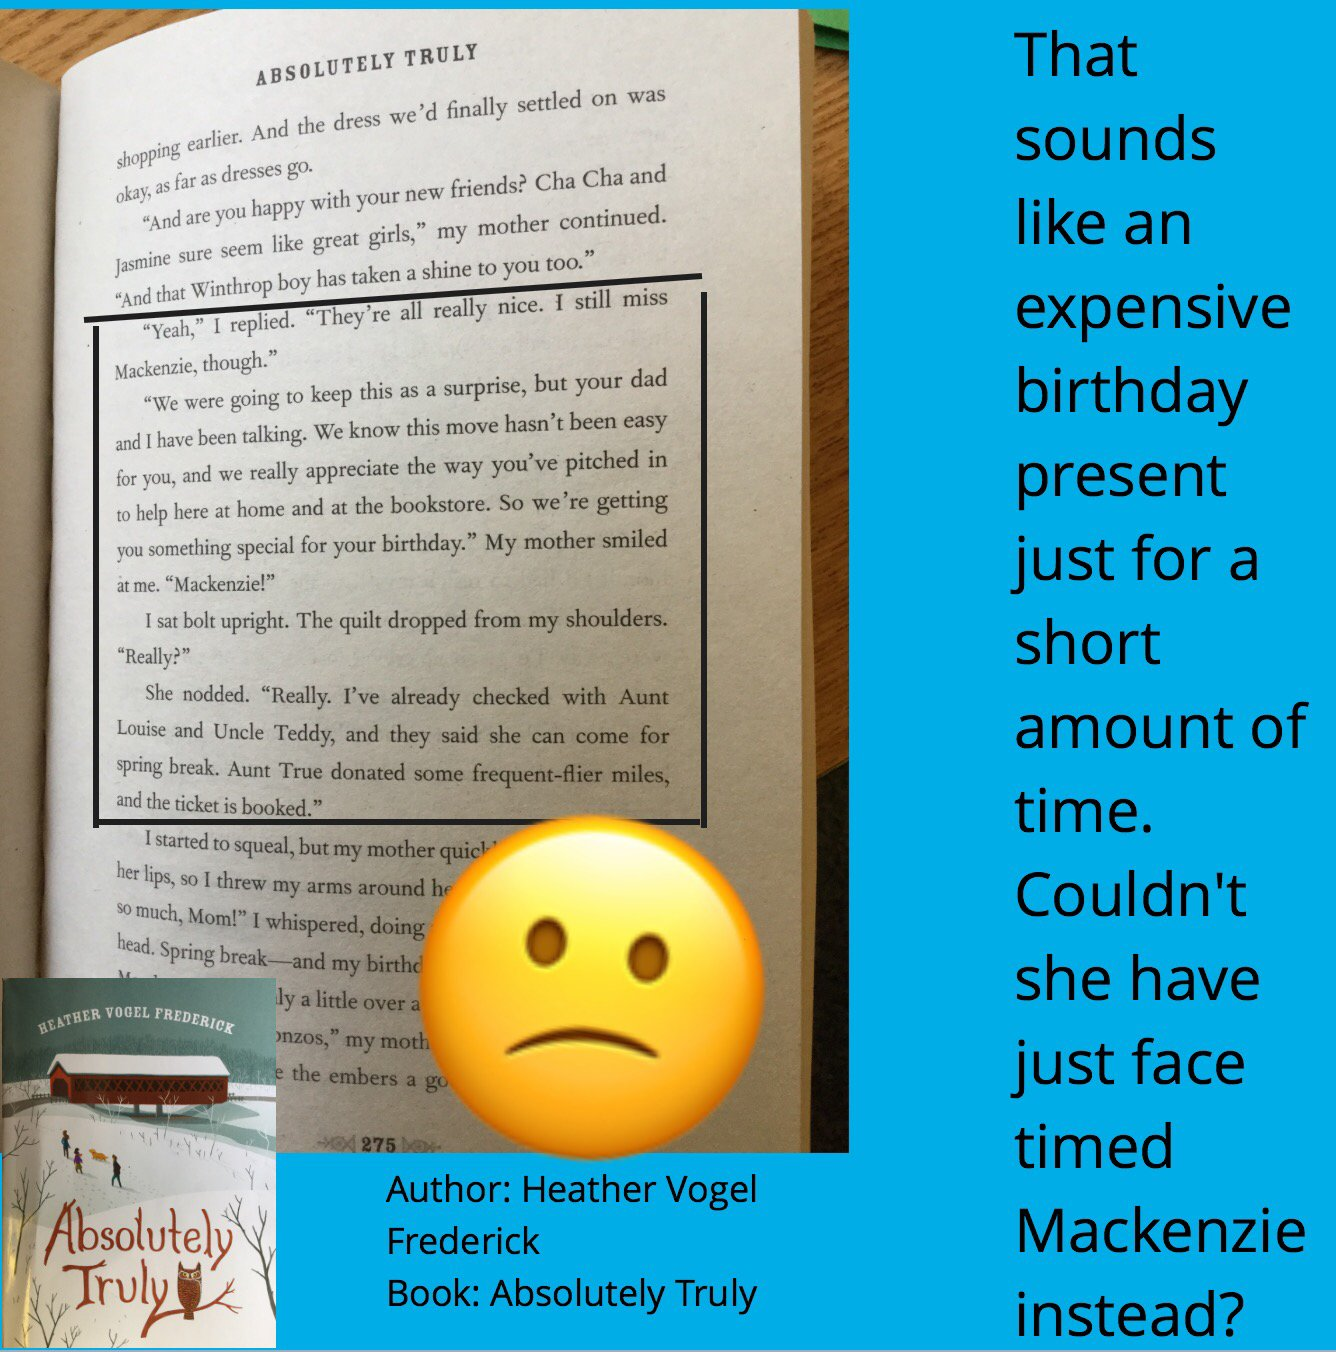 #booksnapswk2 #Booksnaps  Student SK_4VDH is sharing Absolutely Truly by @HVFrederick @kerrvand #betl https://t.co/p7KCfZfuc4